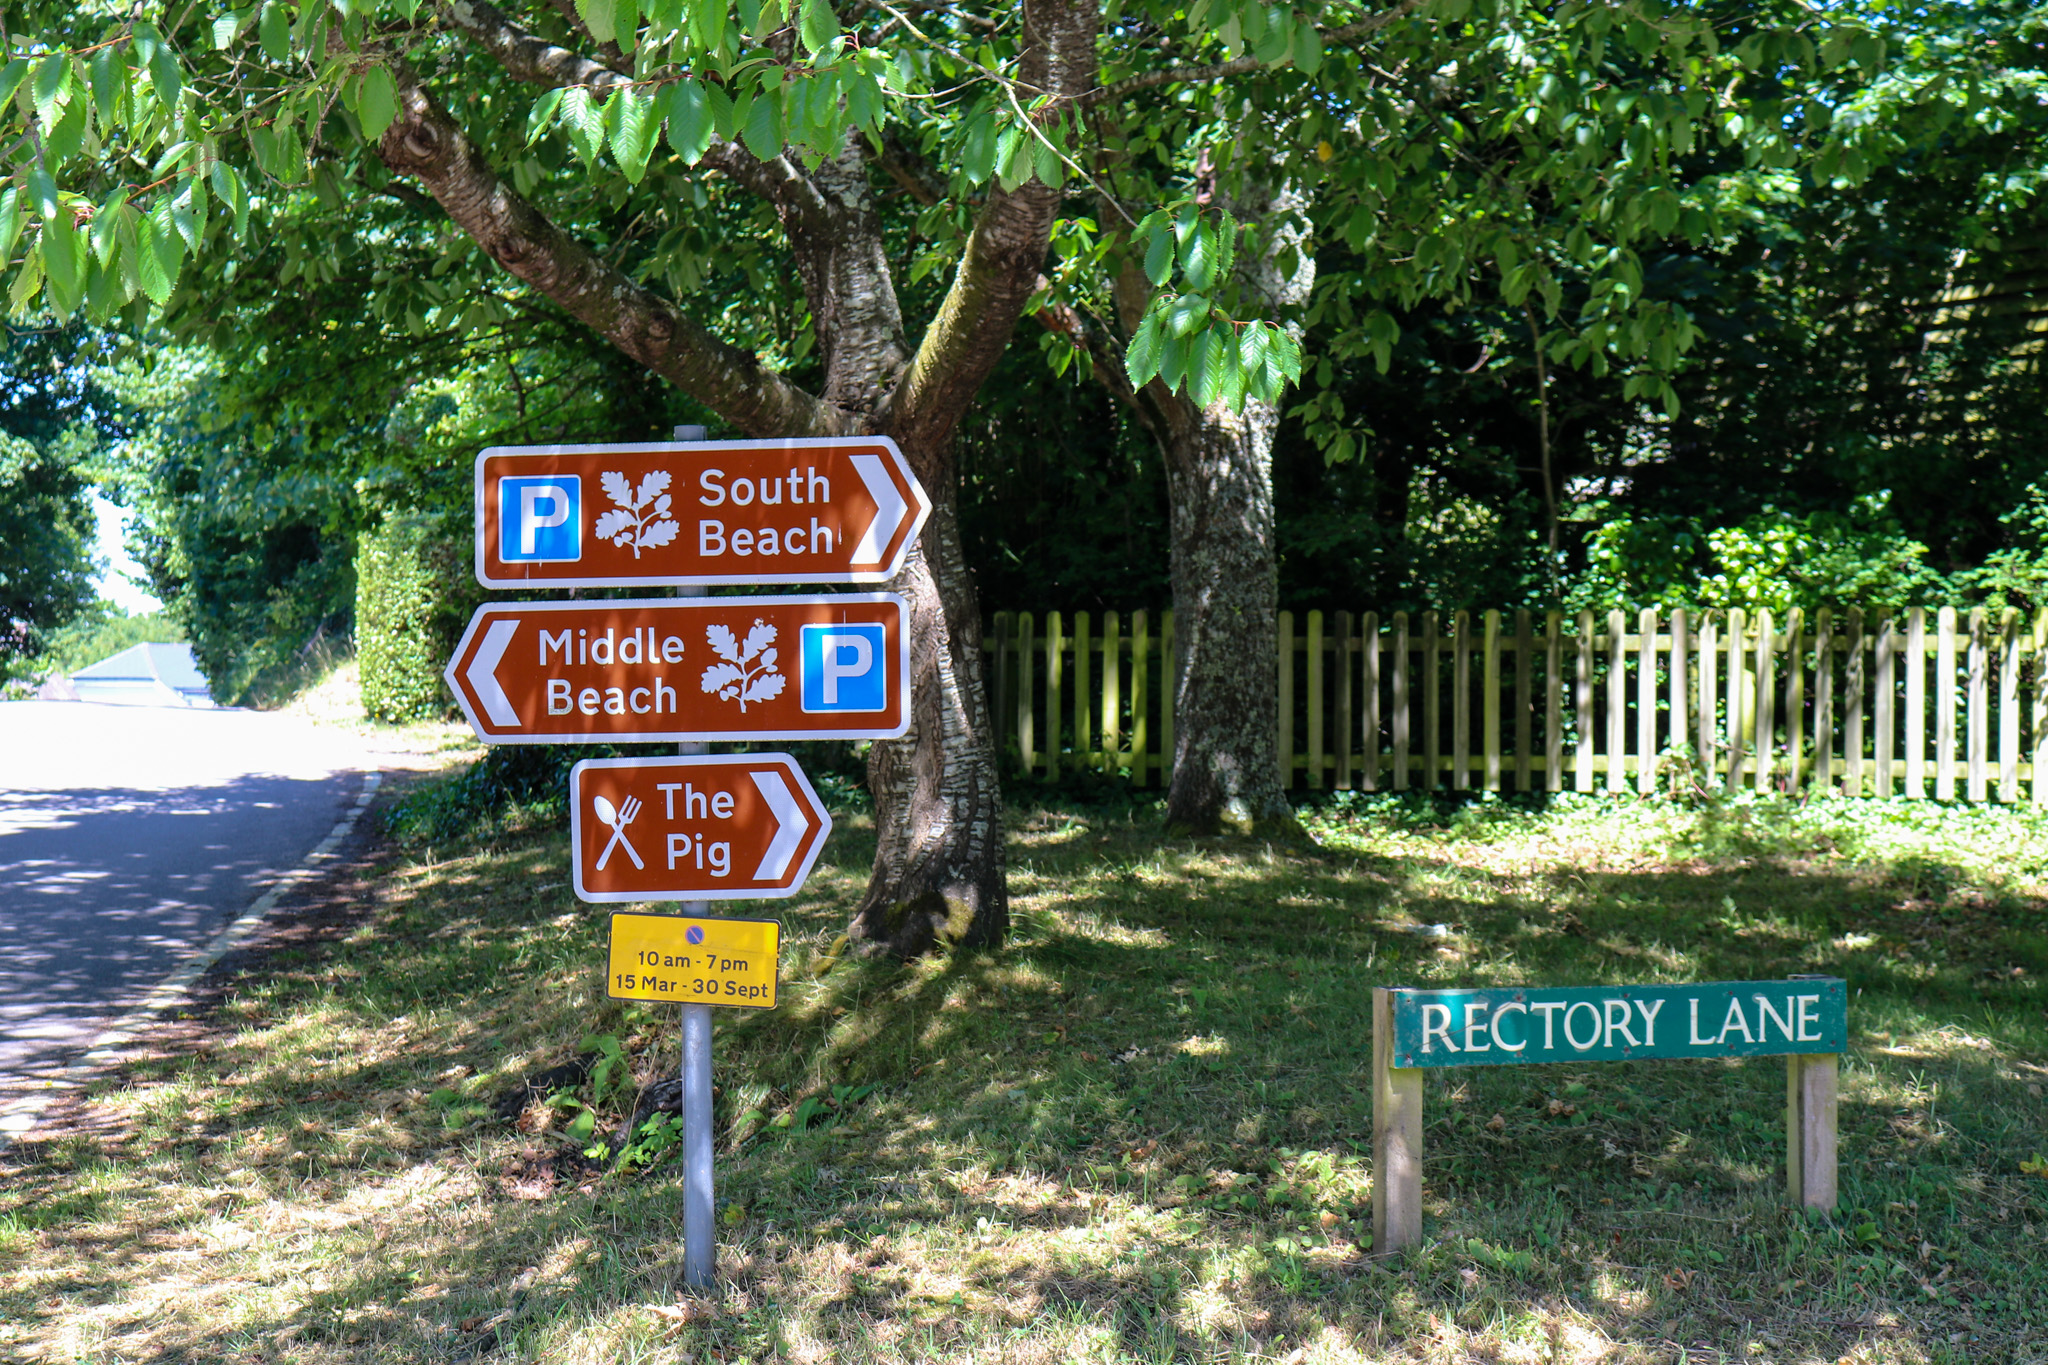 Signs for the beach on Rectory Lane in Studland